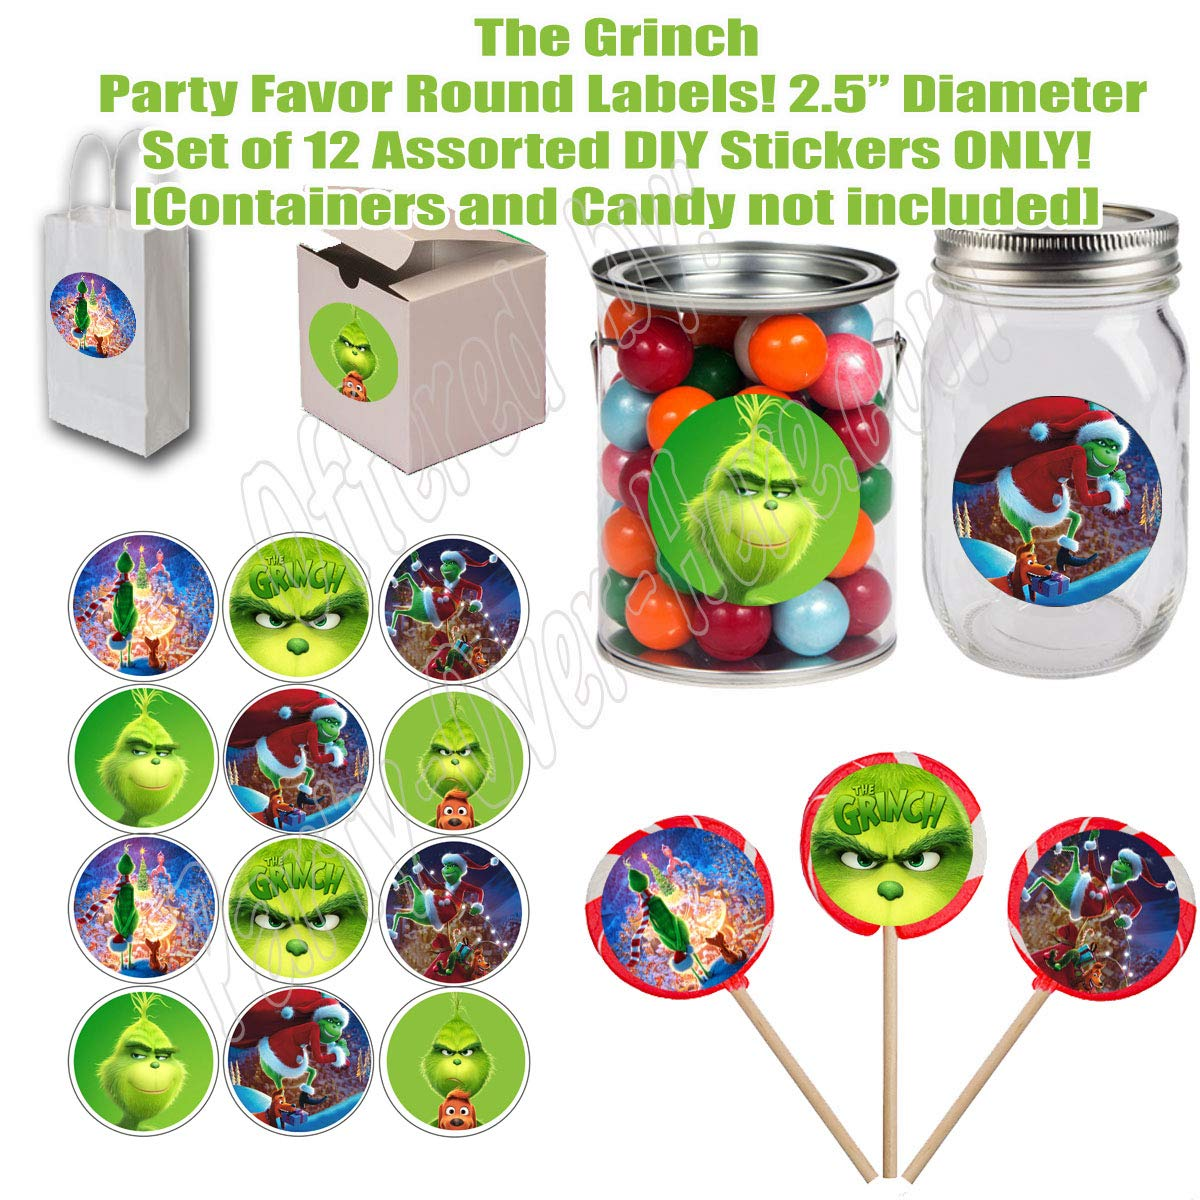 """who Stole Christmas Cards Dog Max Grinch Movie Stickers Cindy Lou Who Boxes or Containers -12 pcs Large 2.5/"""" Round Circle Stickers to Place onto Party Favor Bags Whoville"""